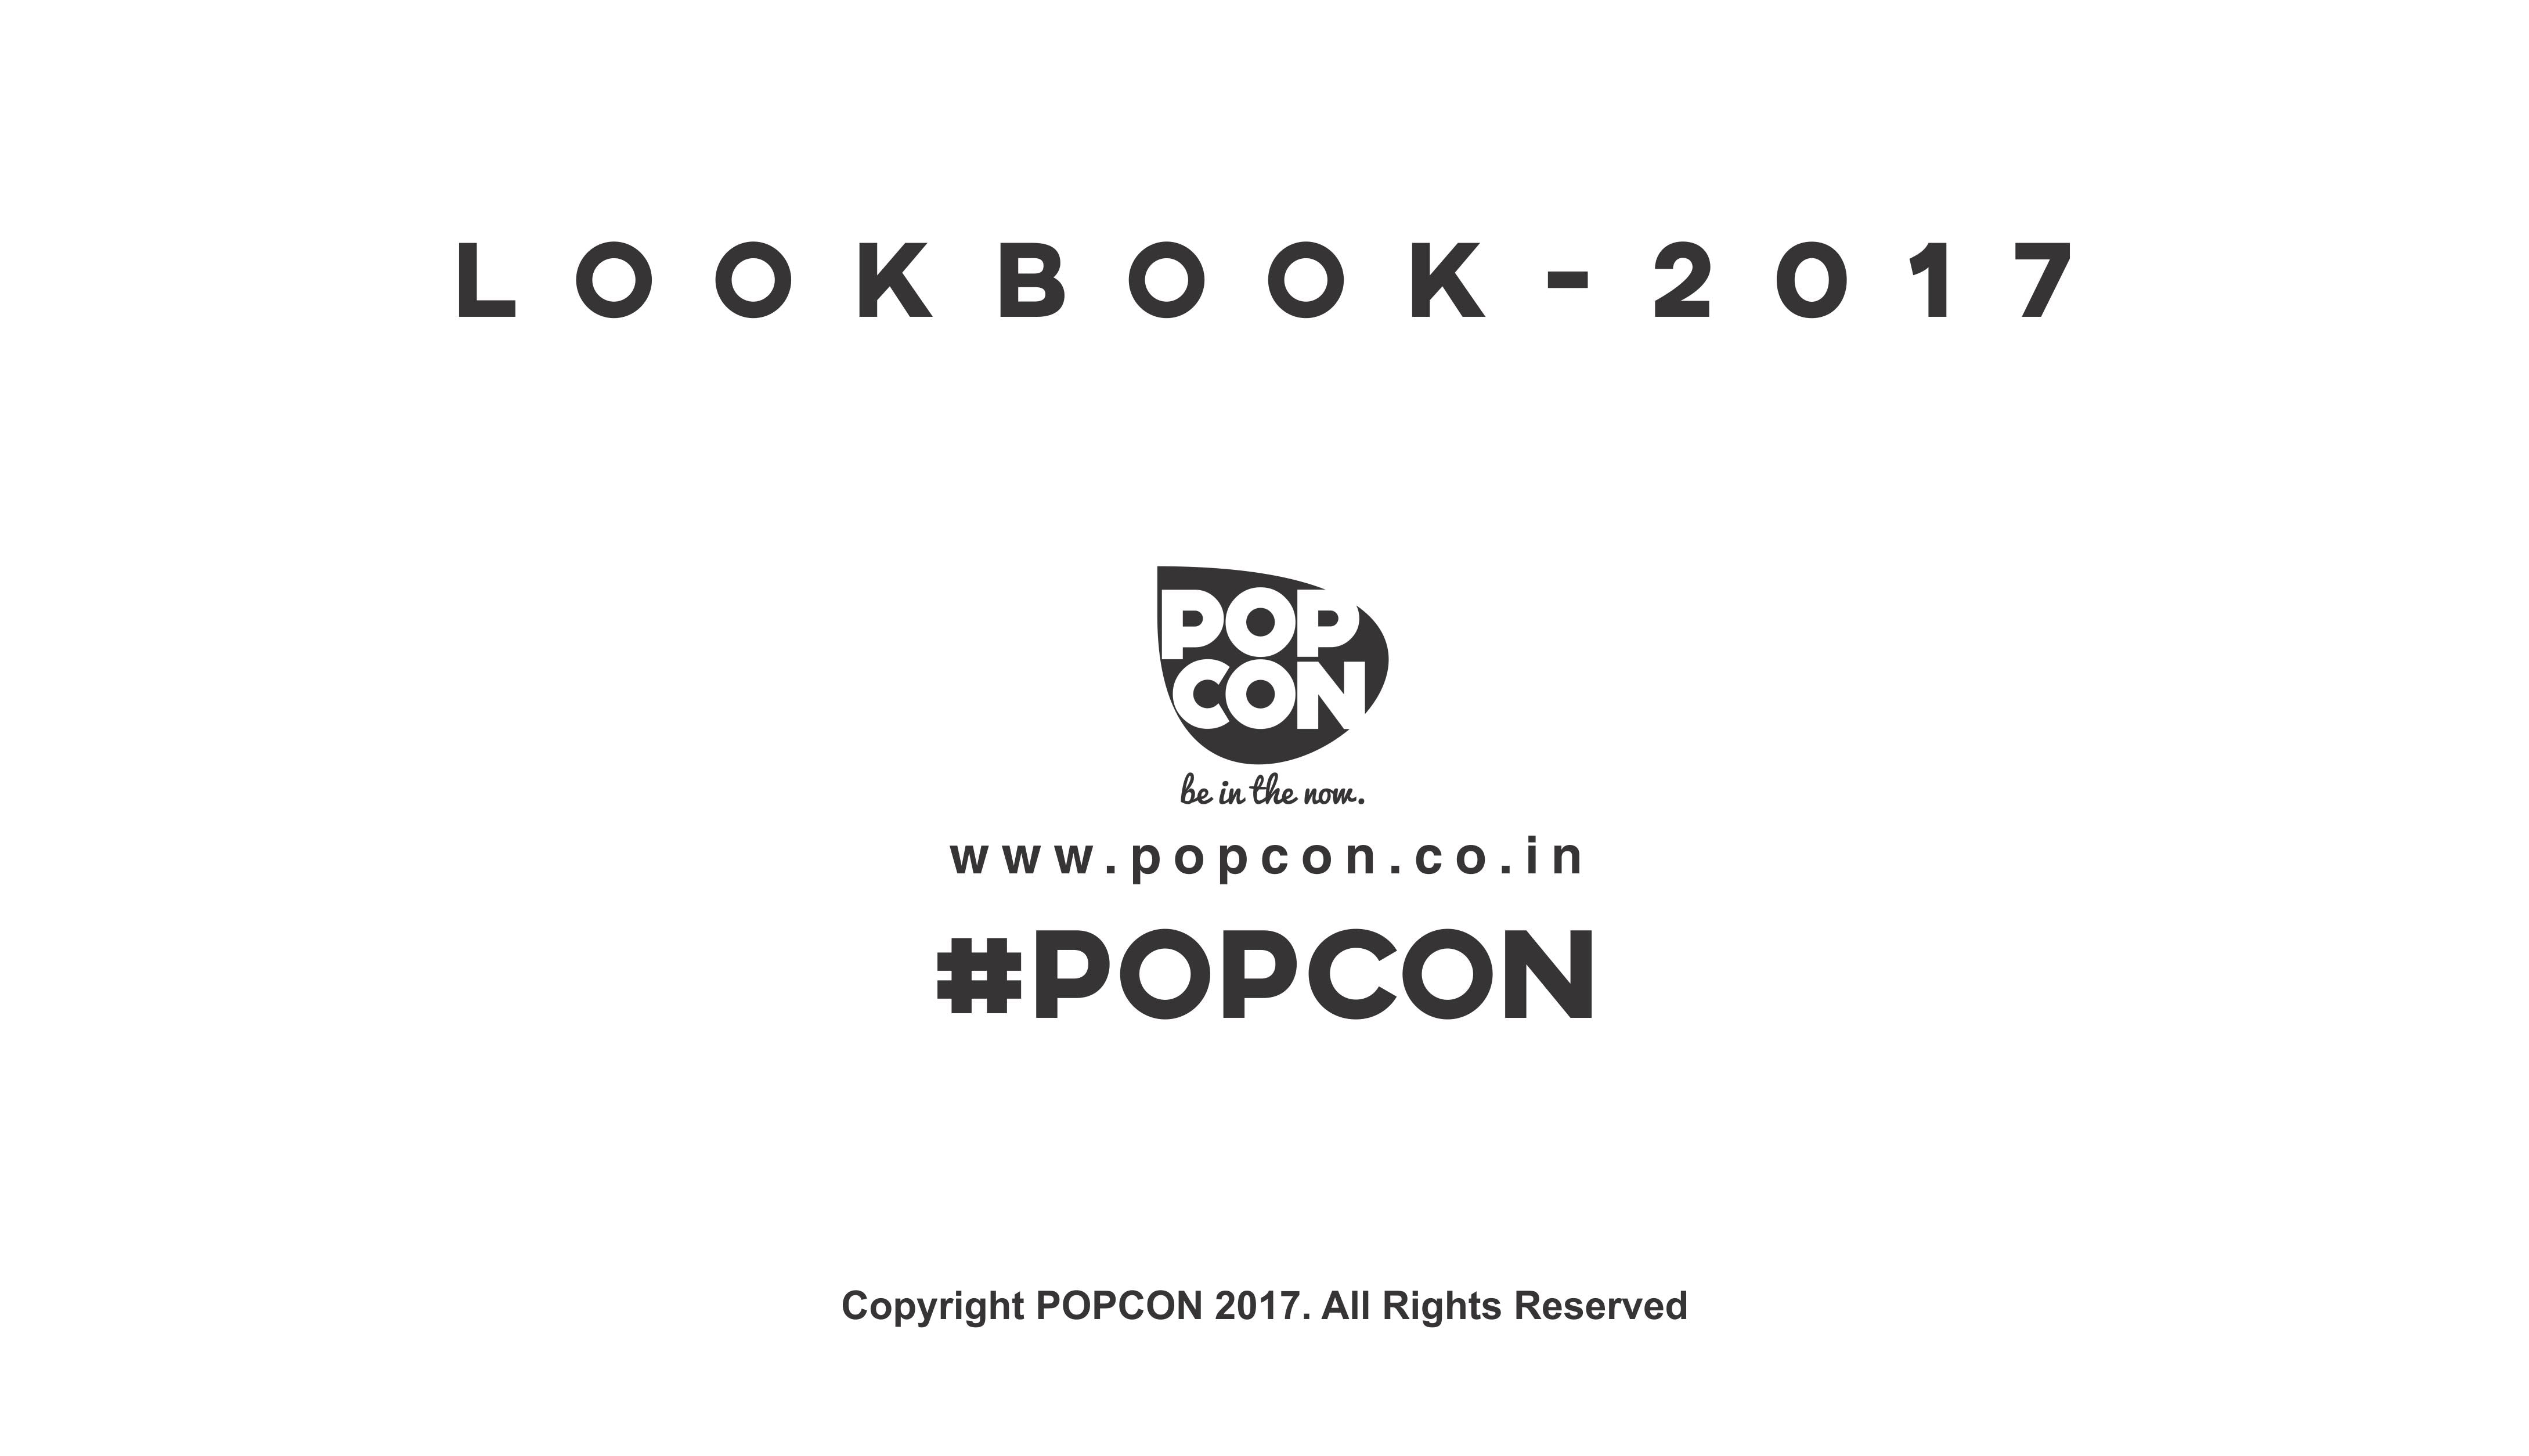 popcon tshirt lookbook